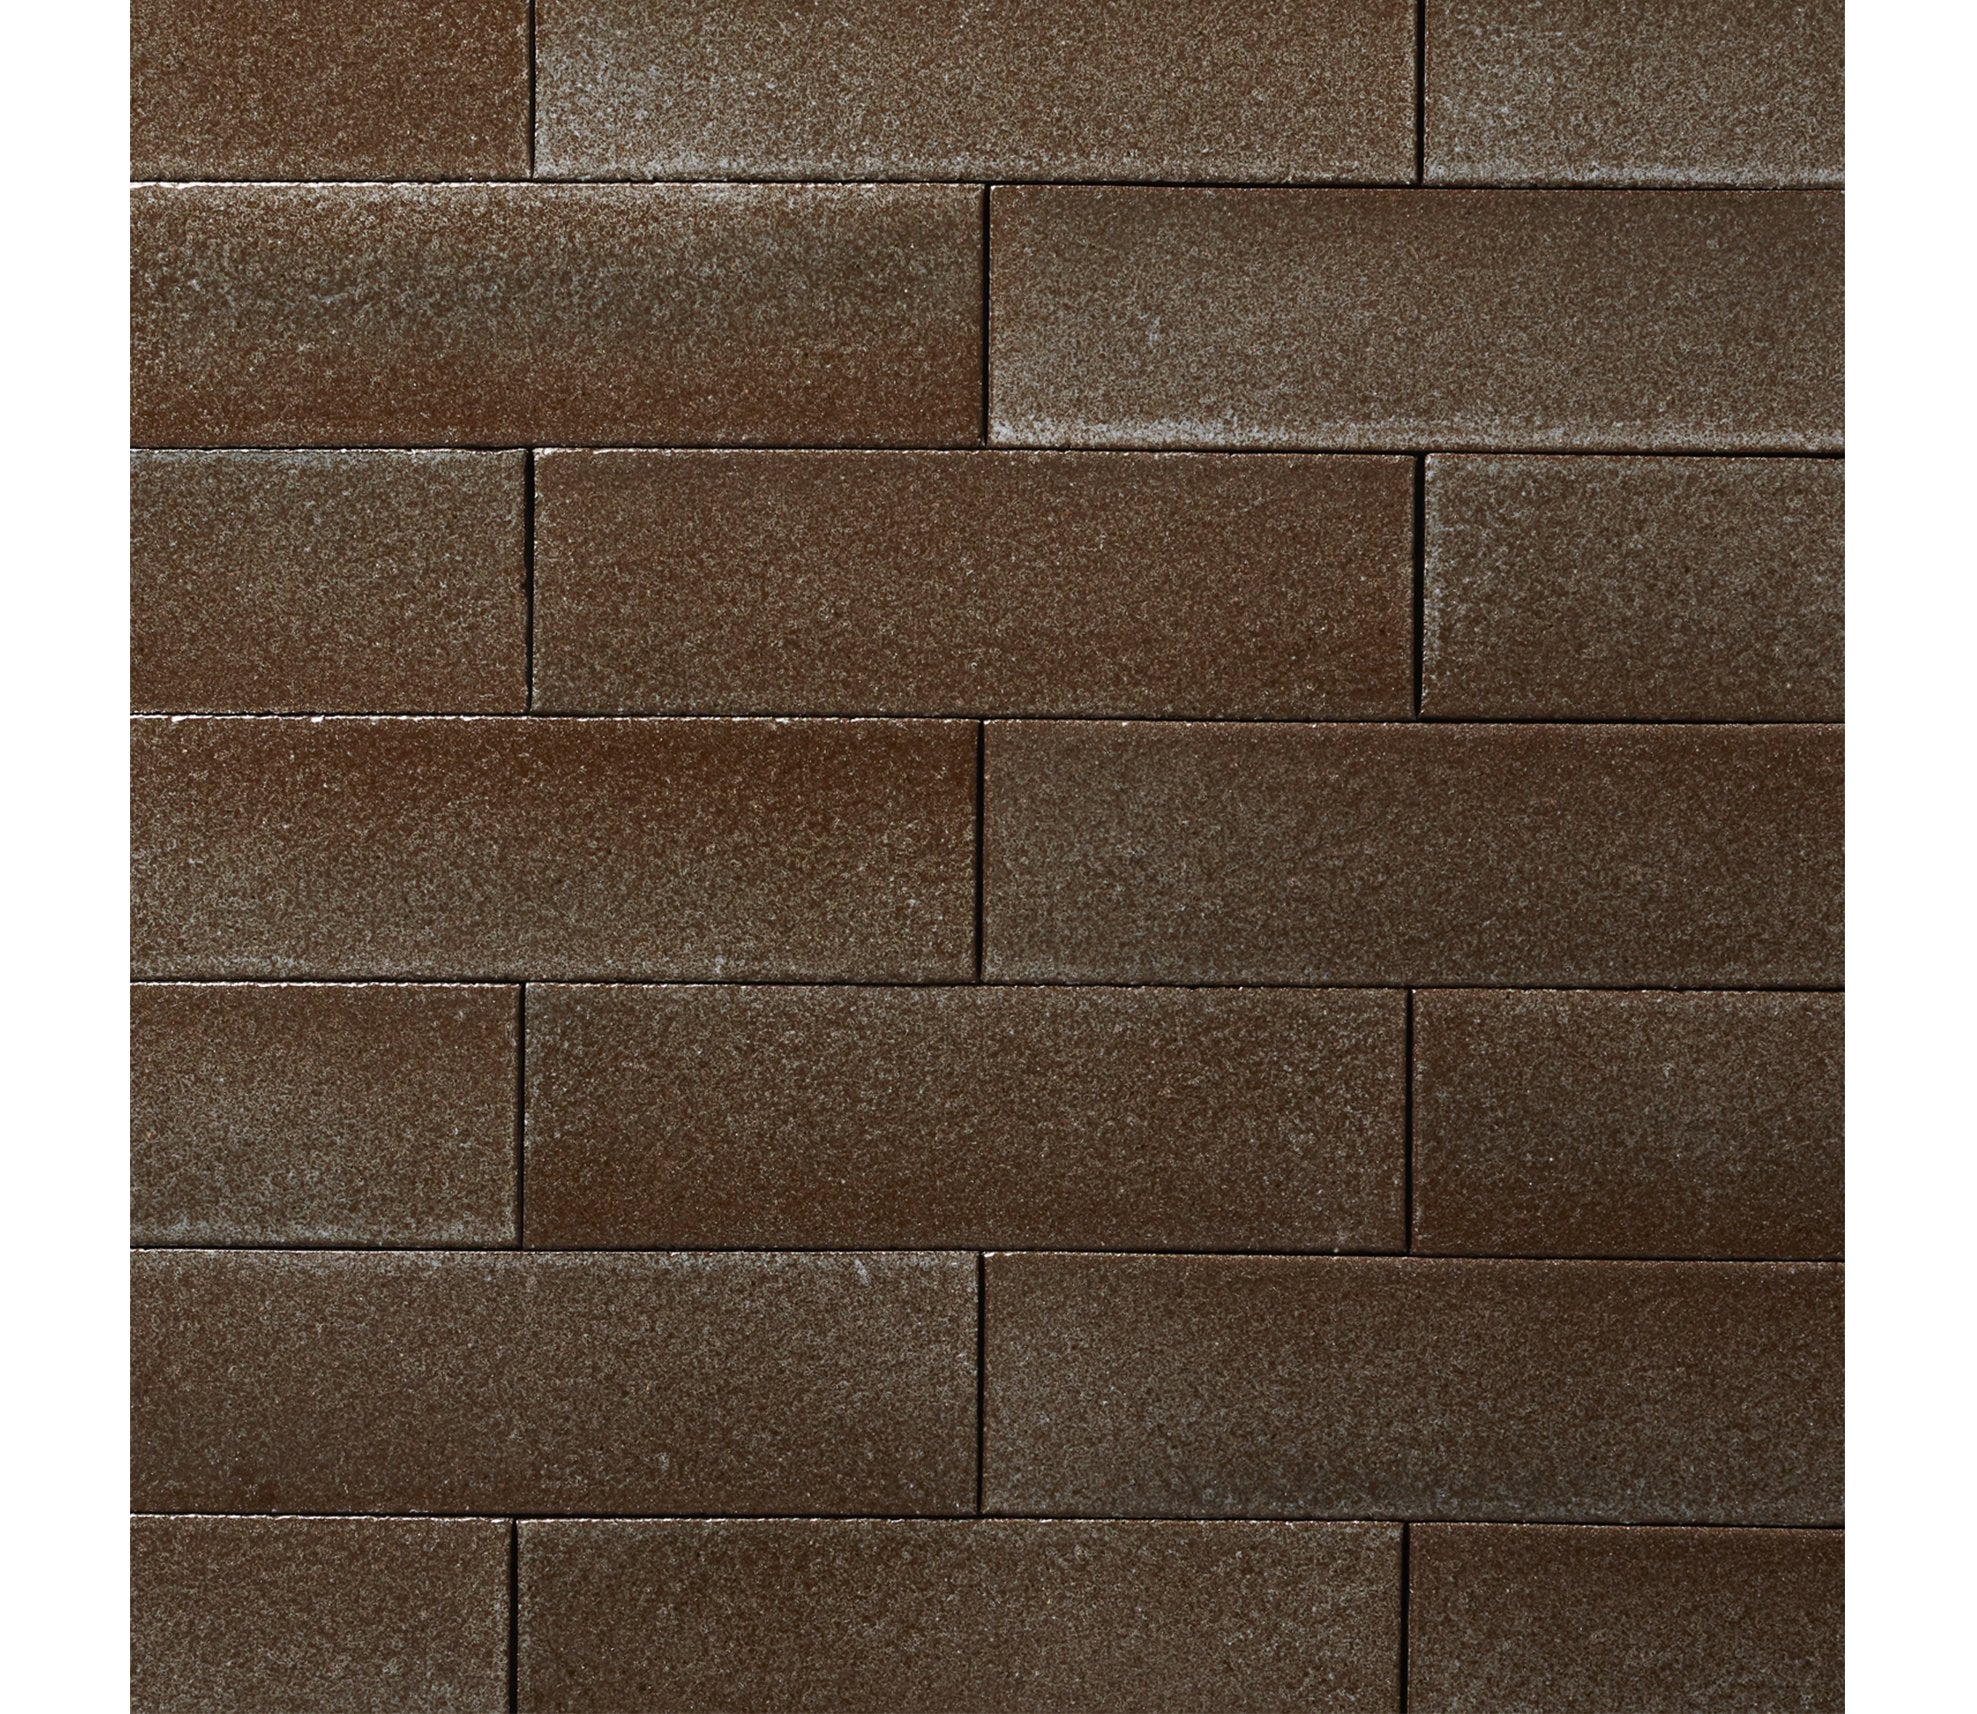 Terra Firma Glazed Bricks Product Image 44